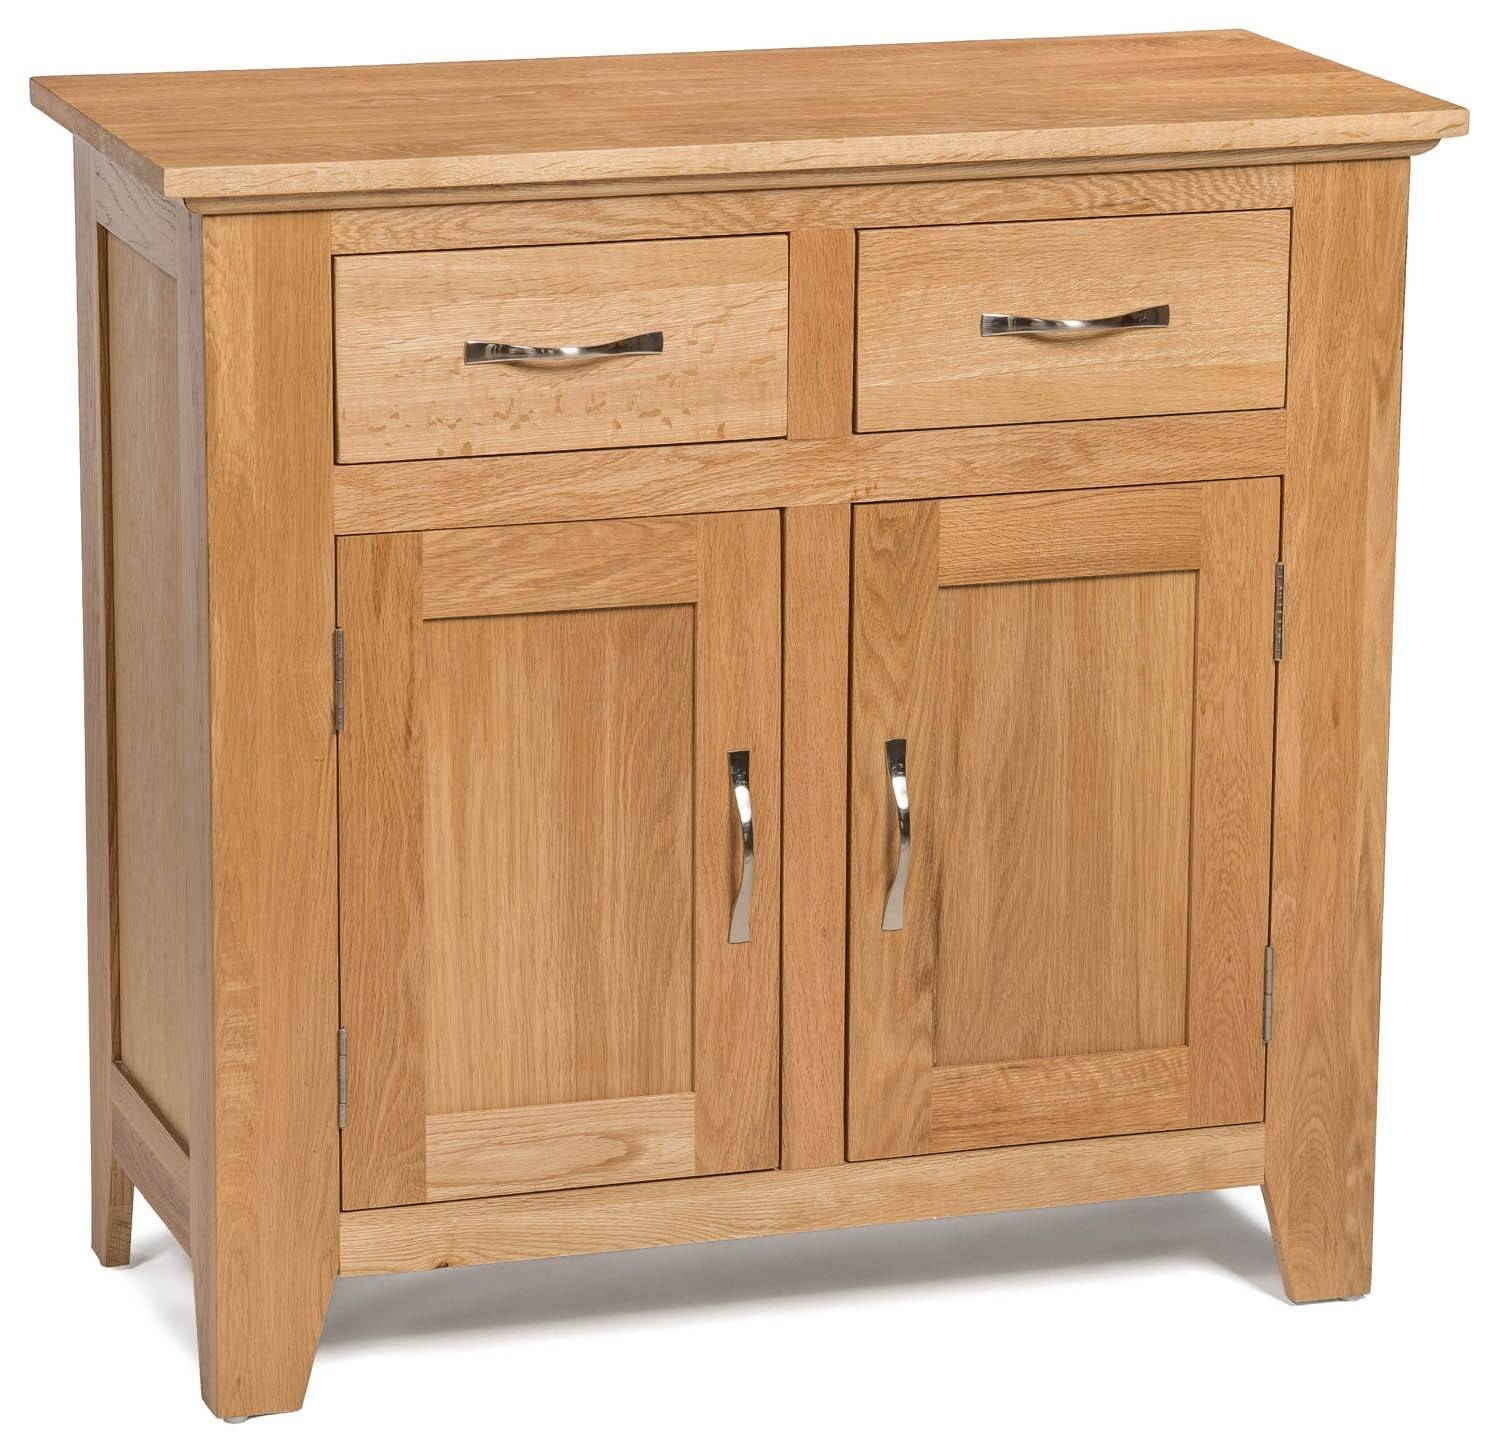 Camberley Oak Small 2 Door 2 Drawer Sideboard | Hallowood within 2 Door Sideboards (Image 4 of 15)